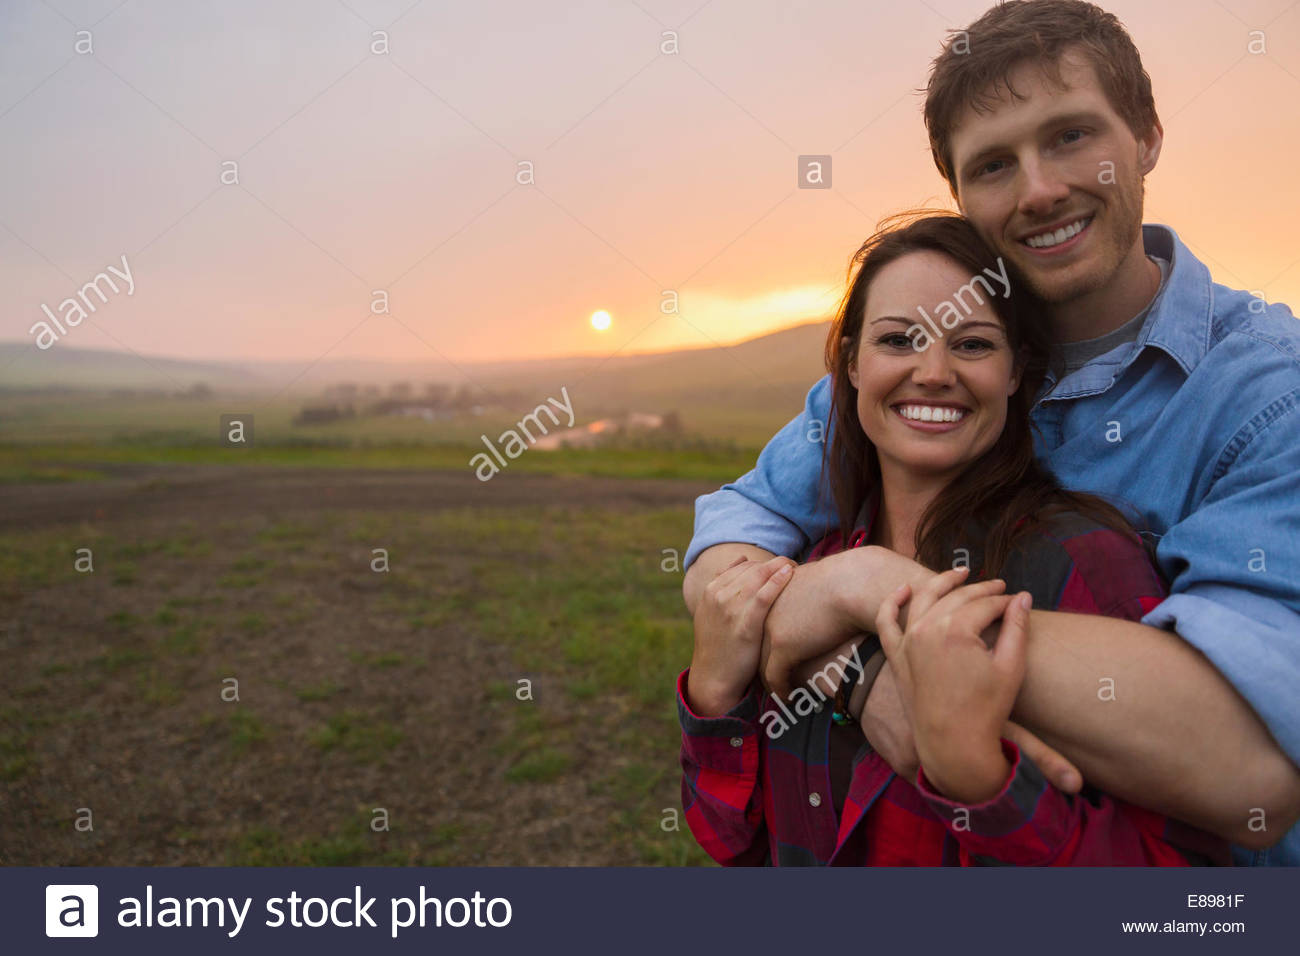 Portrait de couple hugging in field at sunset Photo Stock